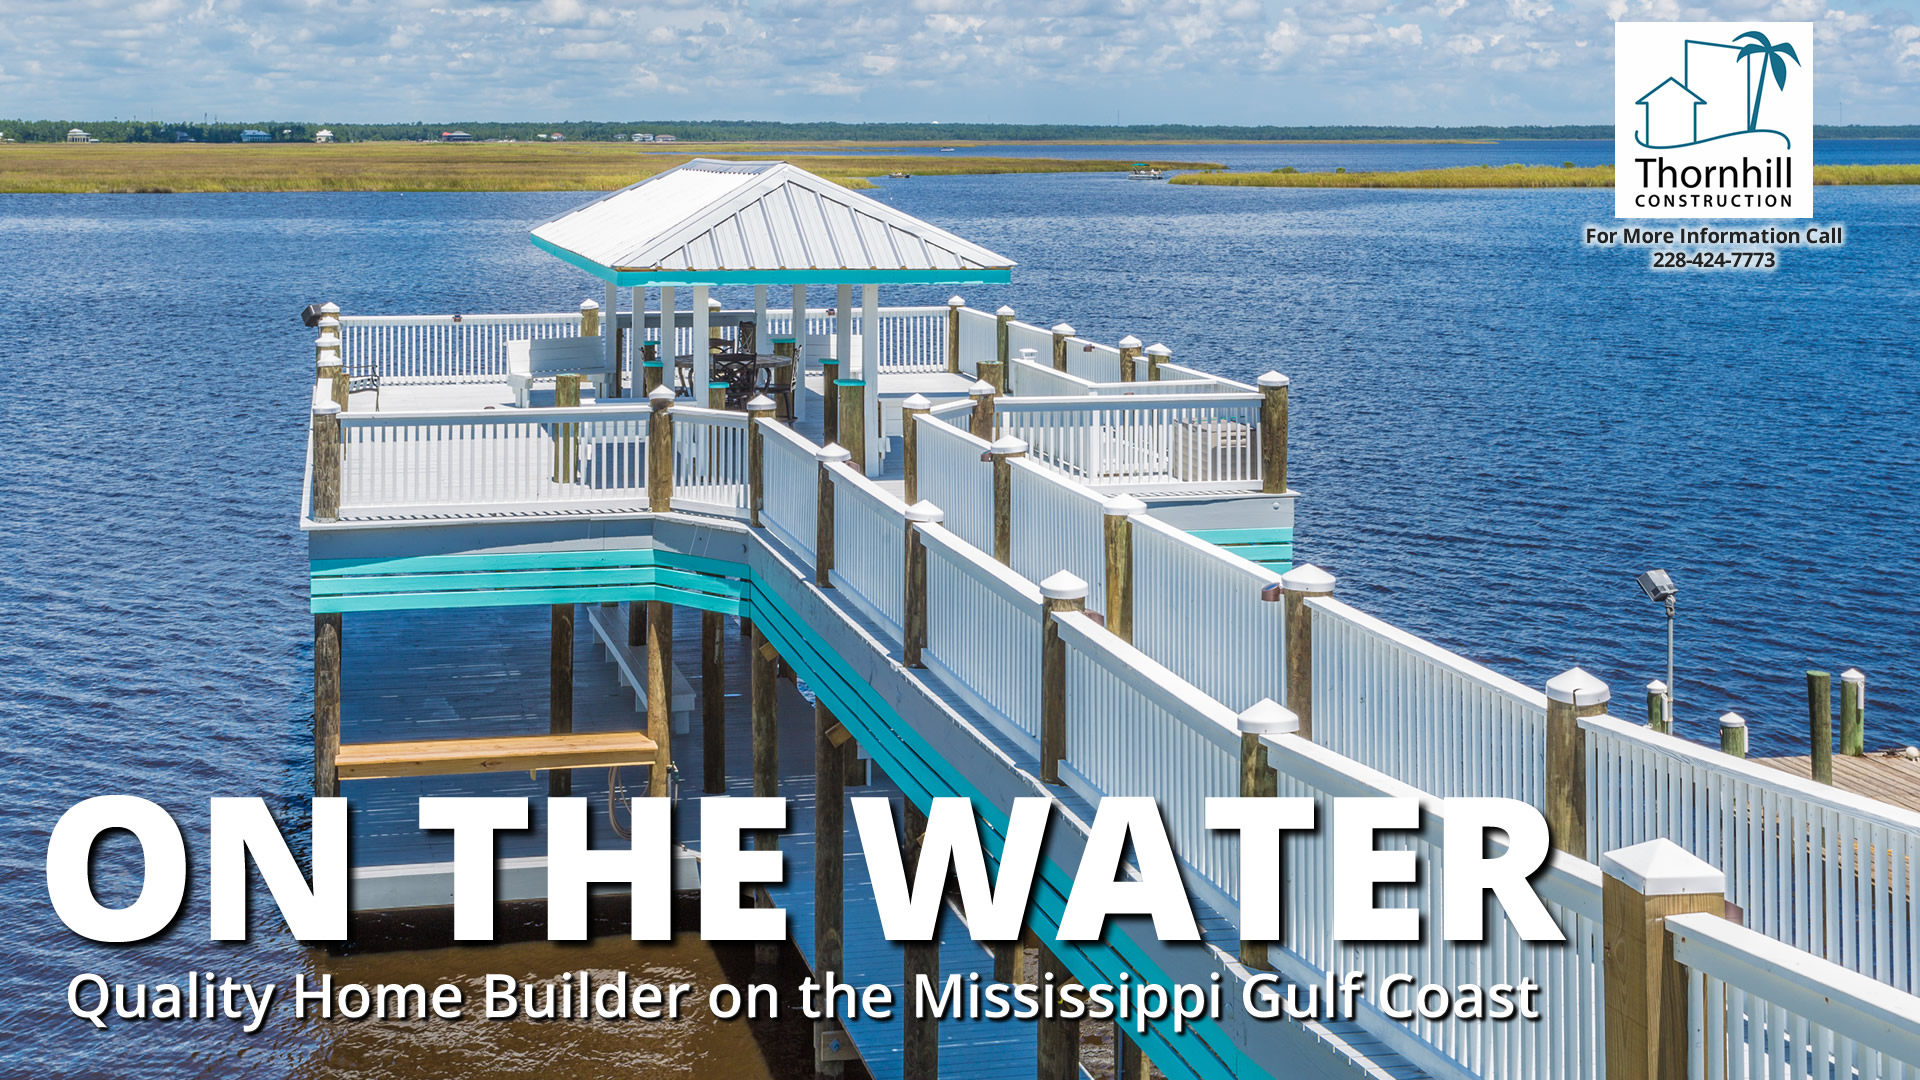 Waterfront home builder on Mississippi Gulf Coast